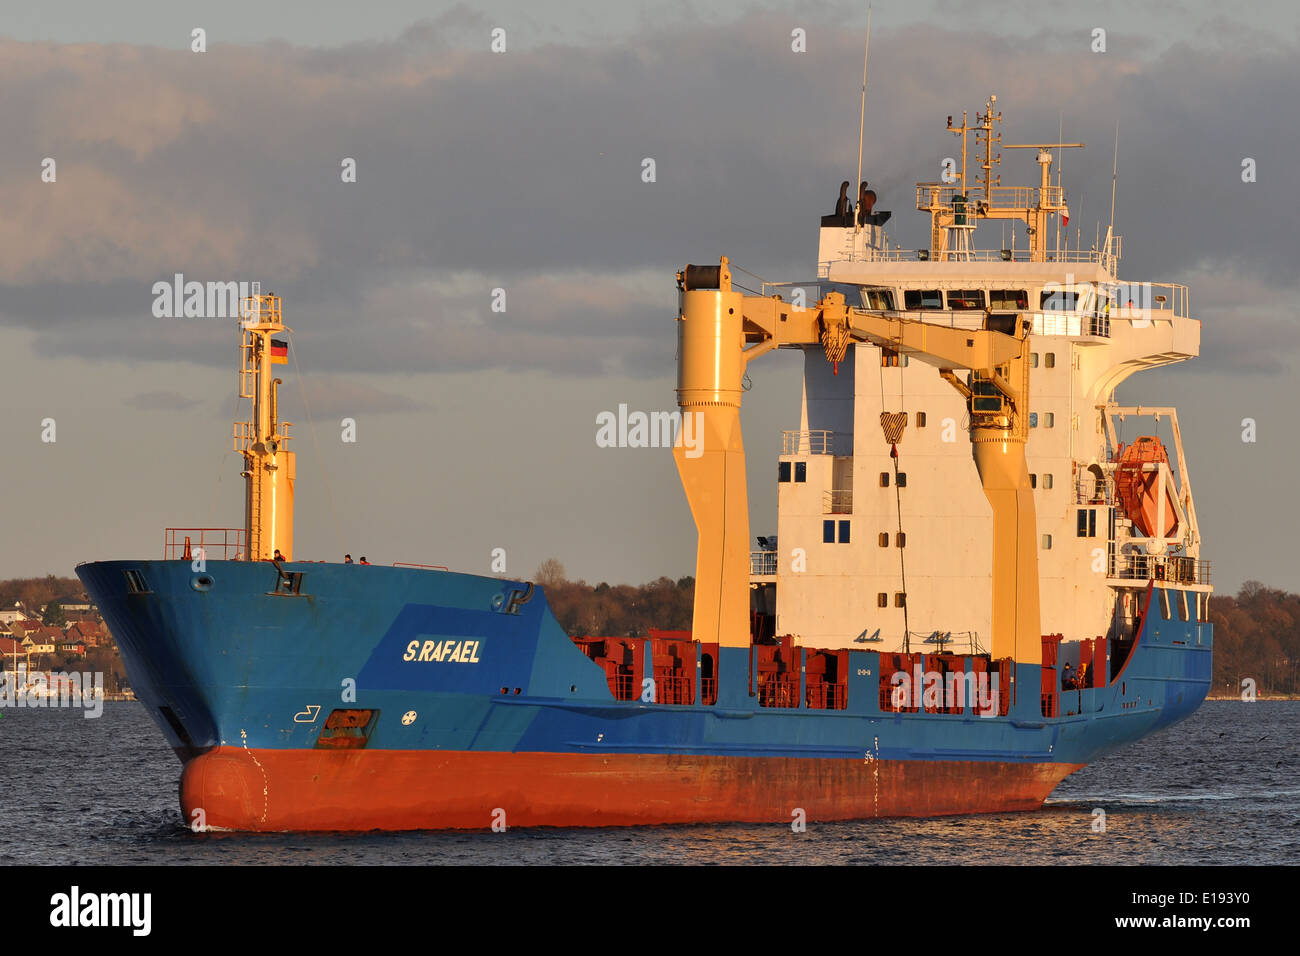 Cargovessel S. Rafael entering Holtenau-Locks (Kiel Canal) - Stock Image